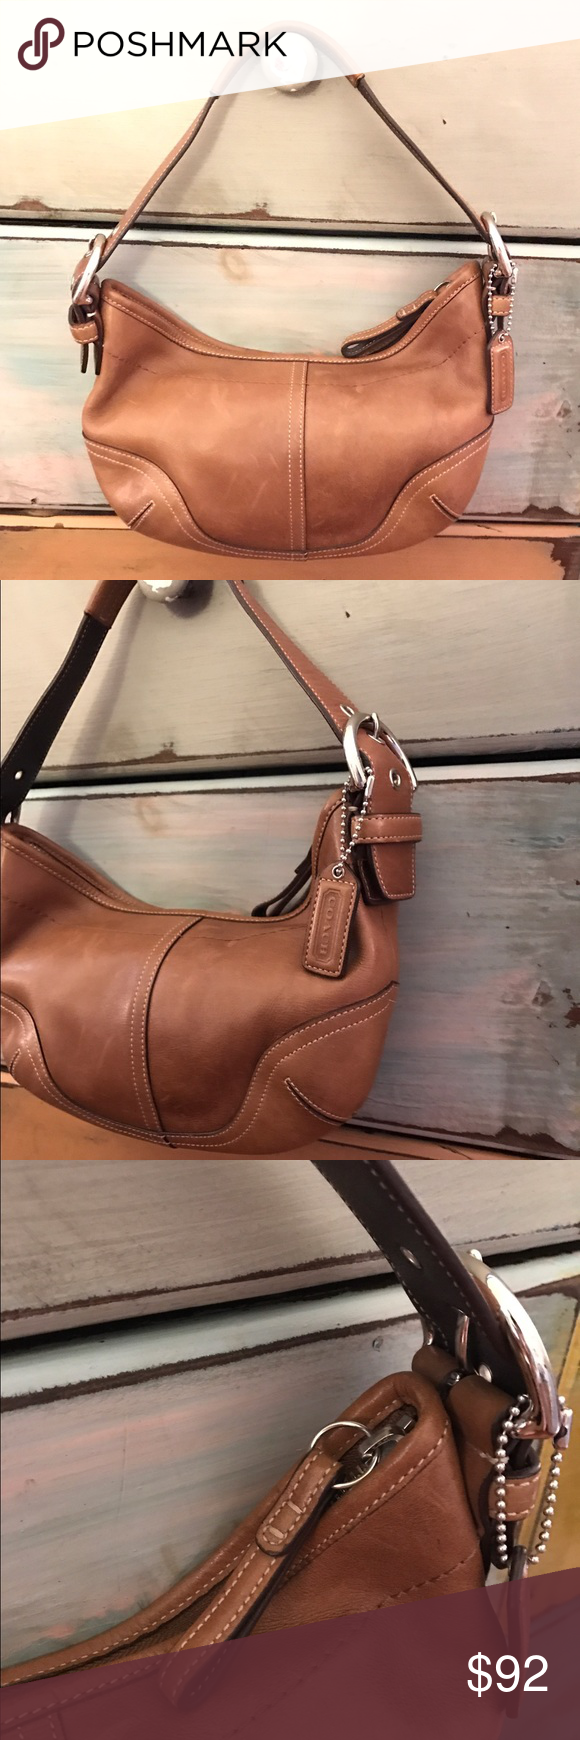 442e4888114 Coach Light Brown Leather Bag This is a very elegant and a very cute bag.  Genuine leather. Metallic parts are in silver tone. One zipper pocket.  Adjustable ...